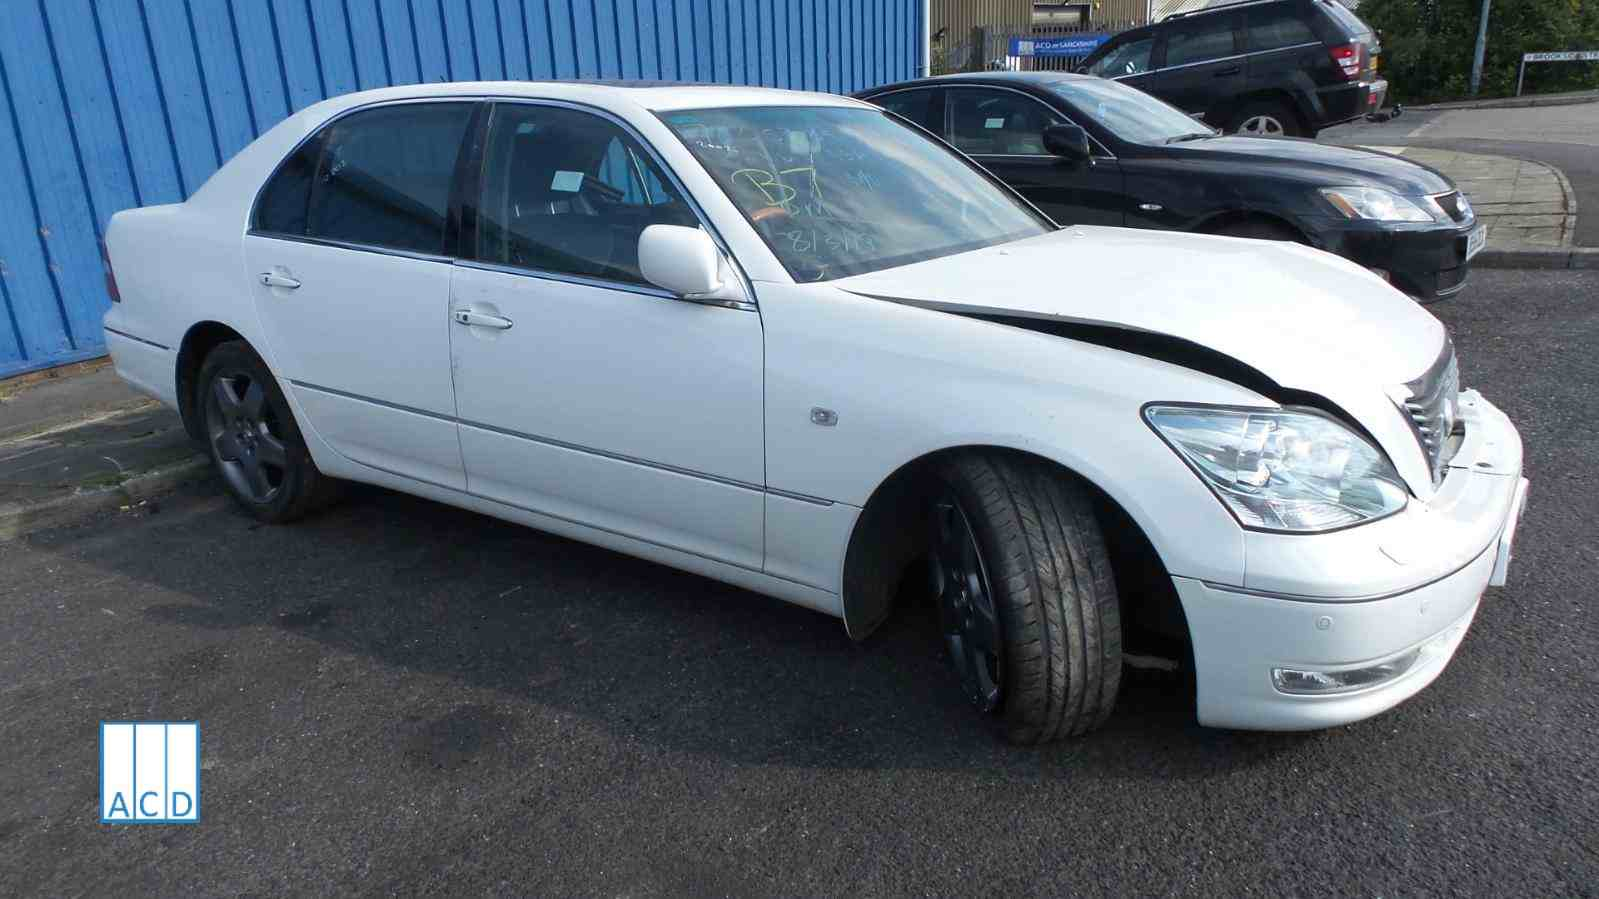 Lexus LS430 4.3L Petrol 6-Speed Automatic 2006 #2810 01